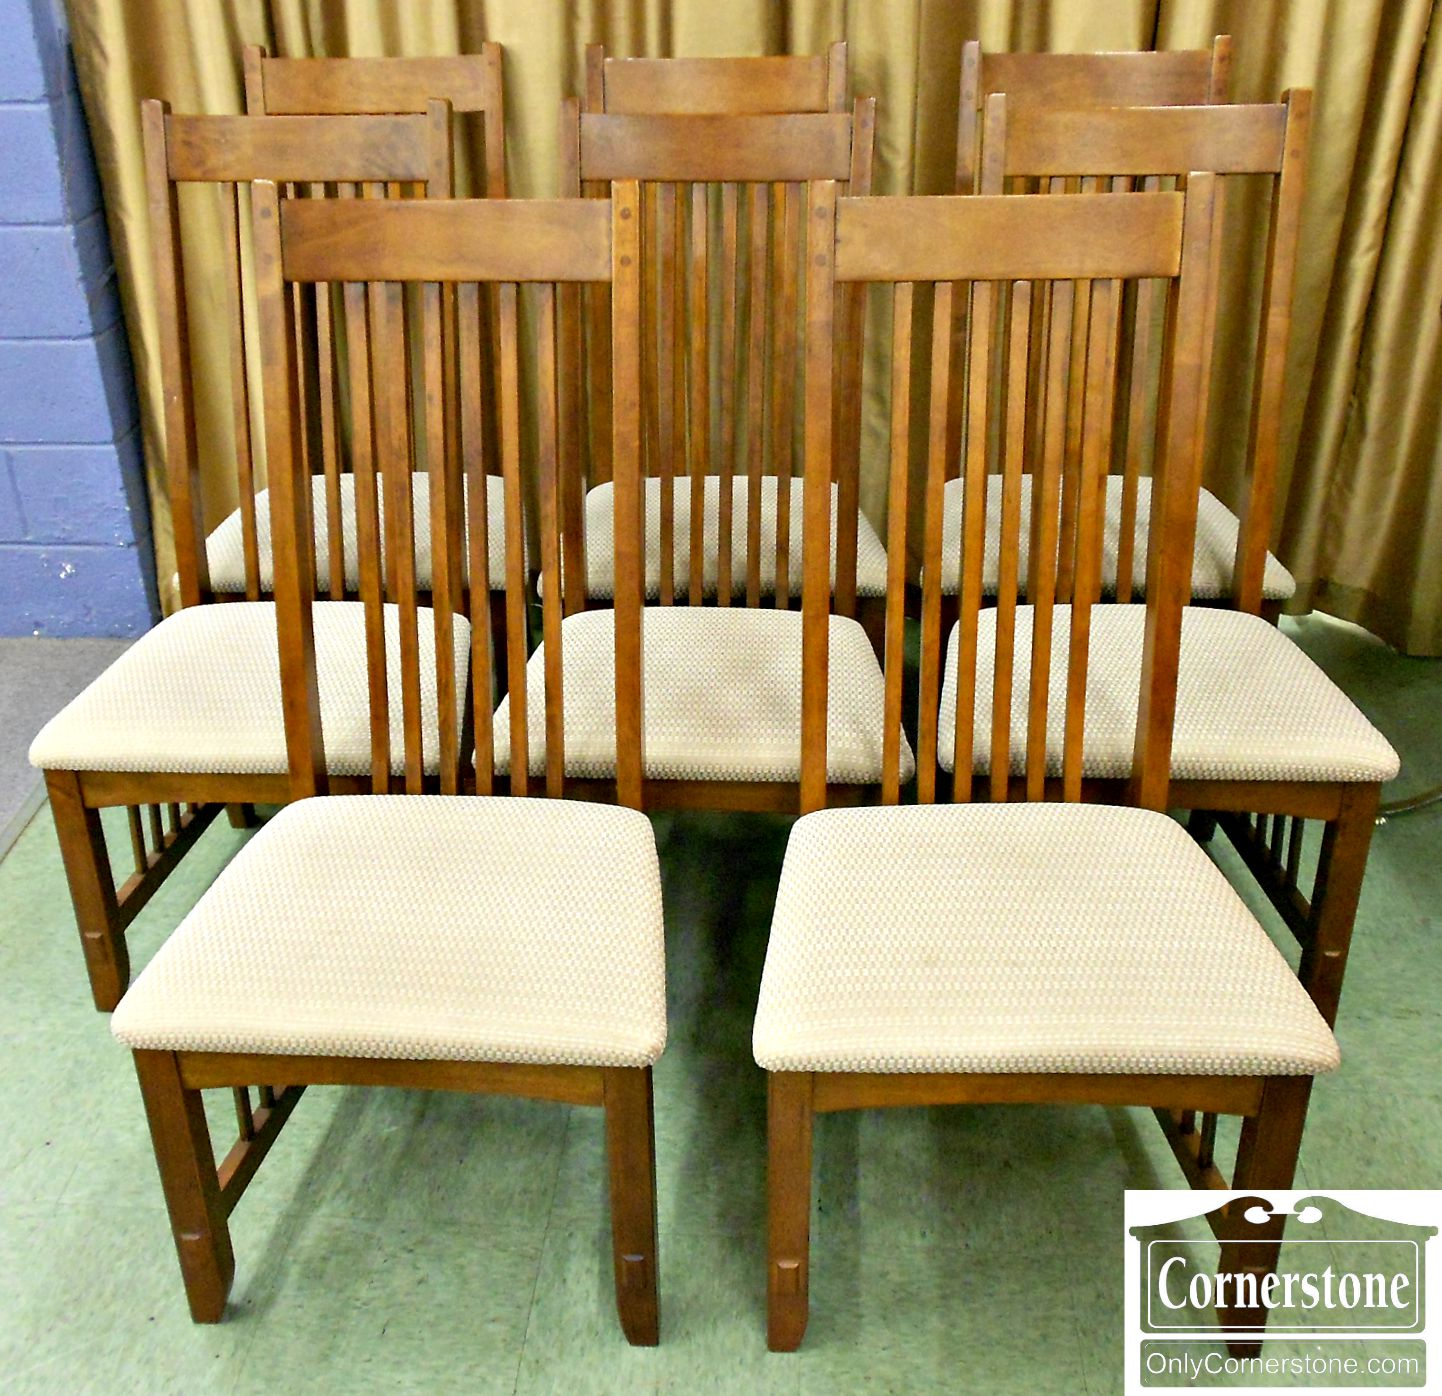 5670-533 8 Mission Style Chairs